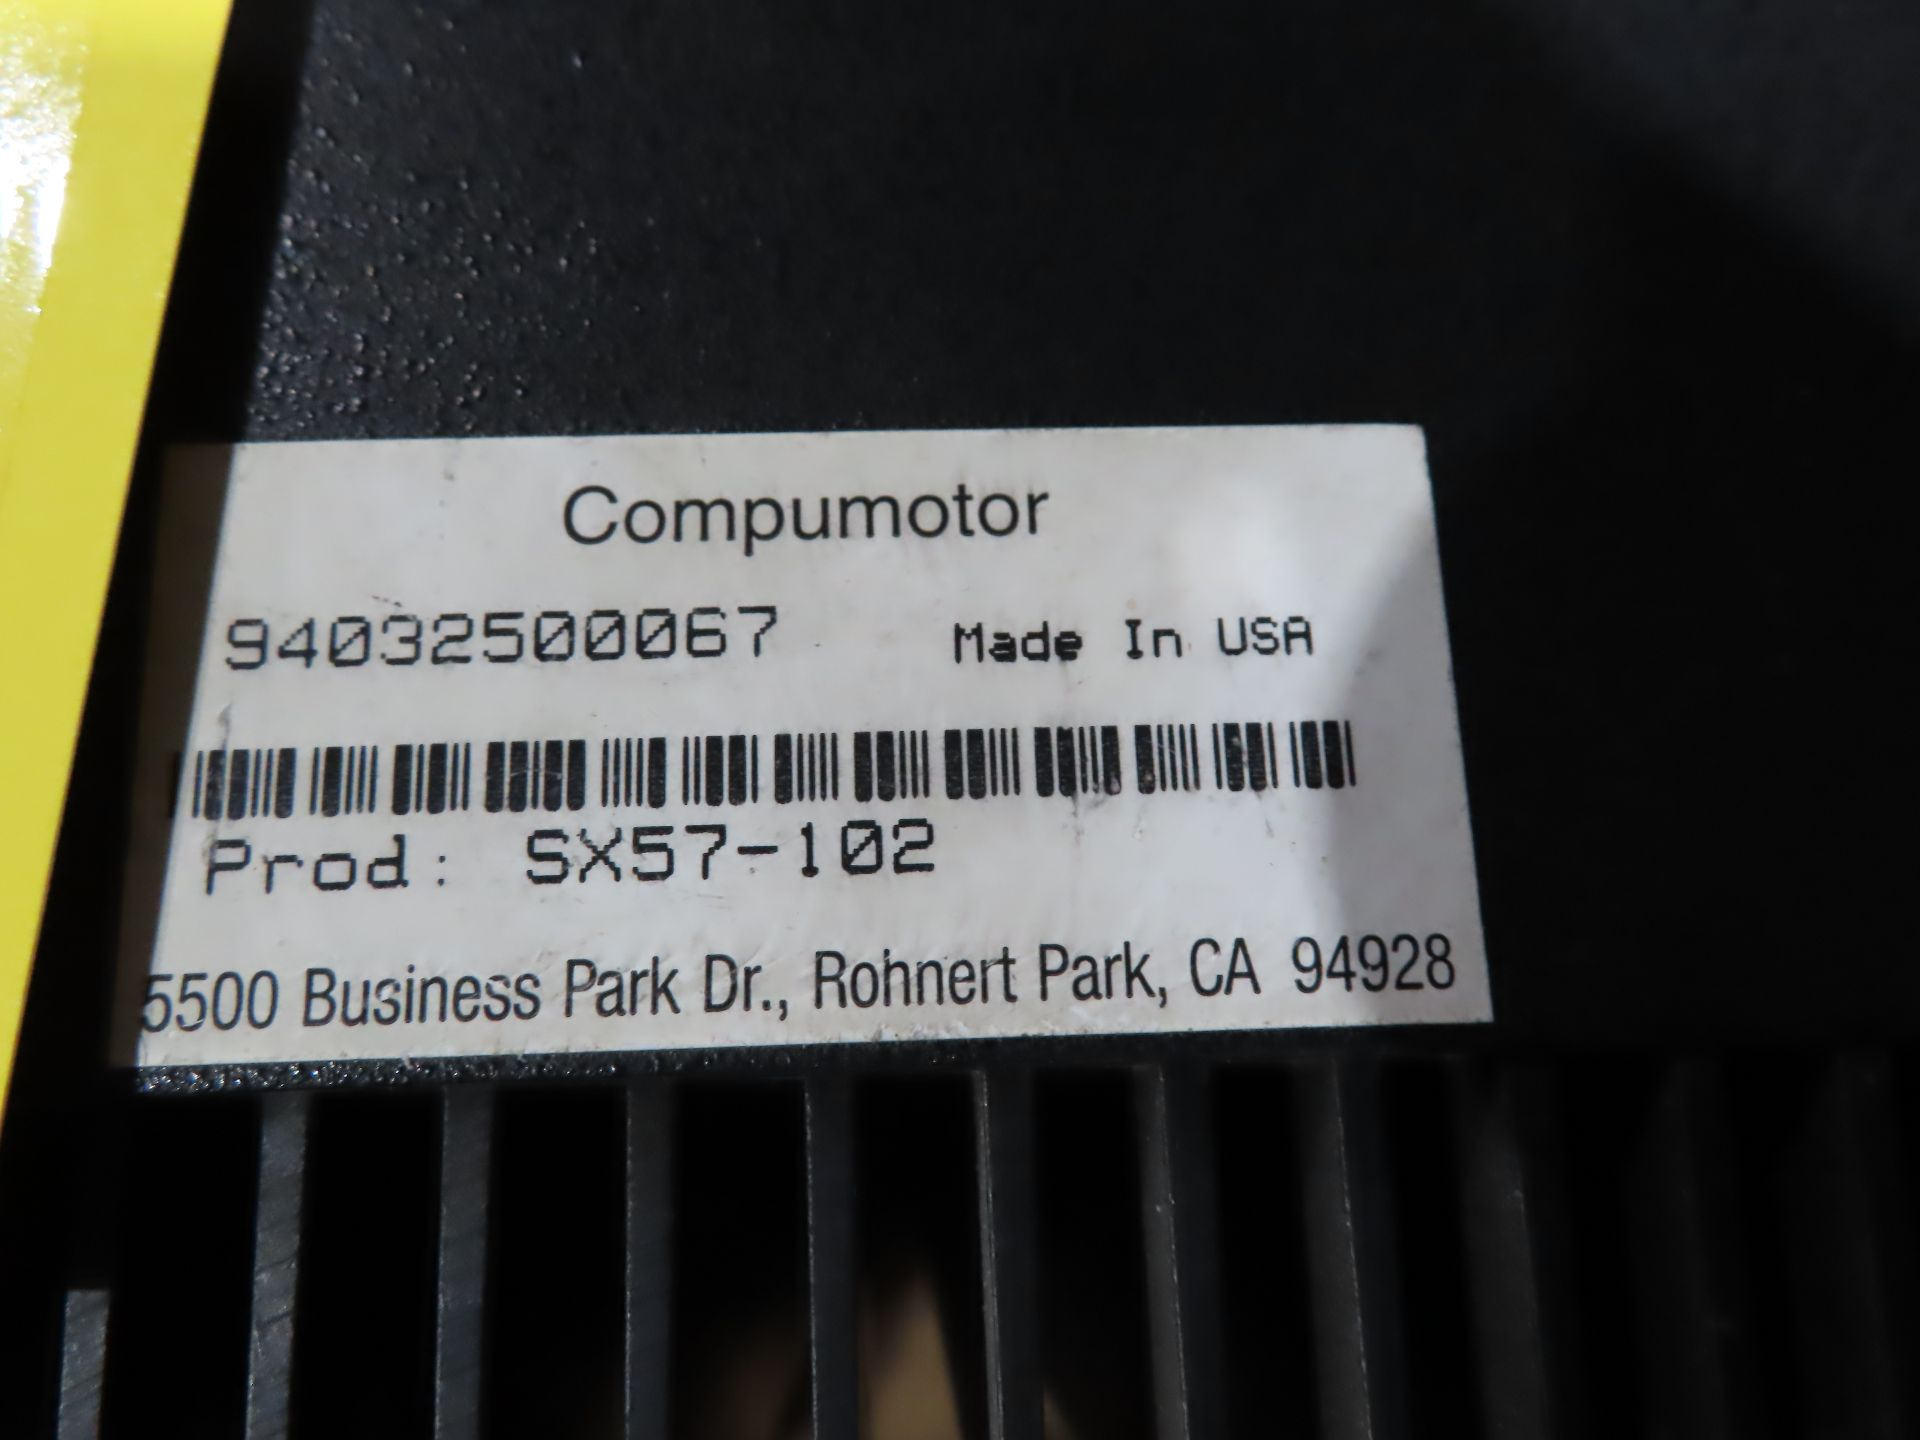 Lot 110 - Parker Compumotor model SX57-102, as always, with Brolyn LLC auctions, all lots can be picked up